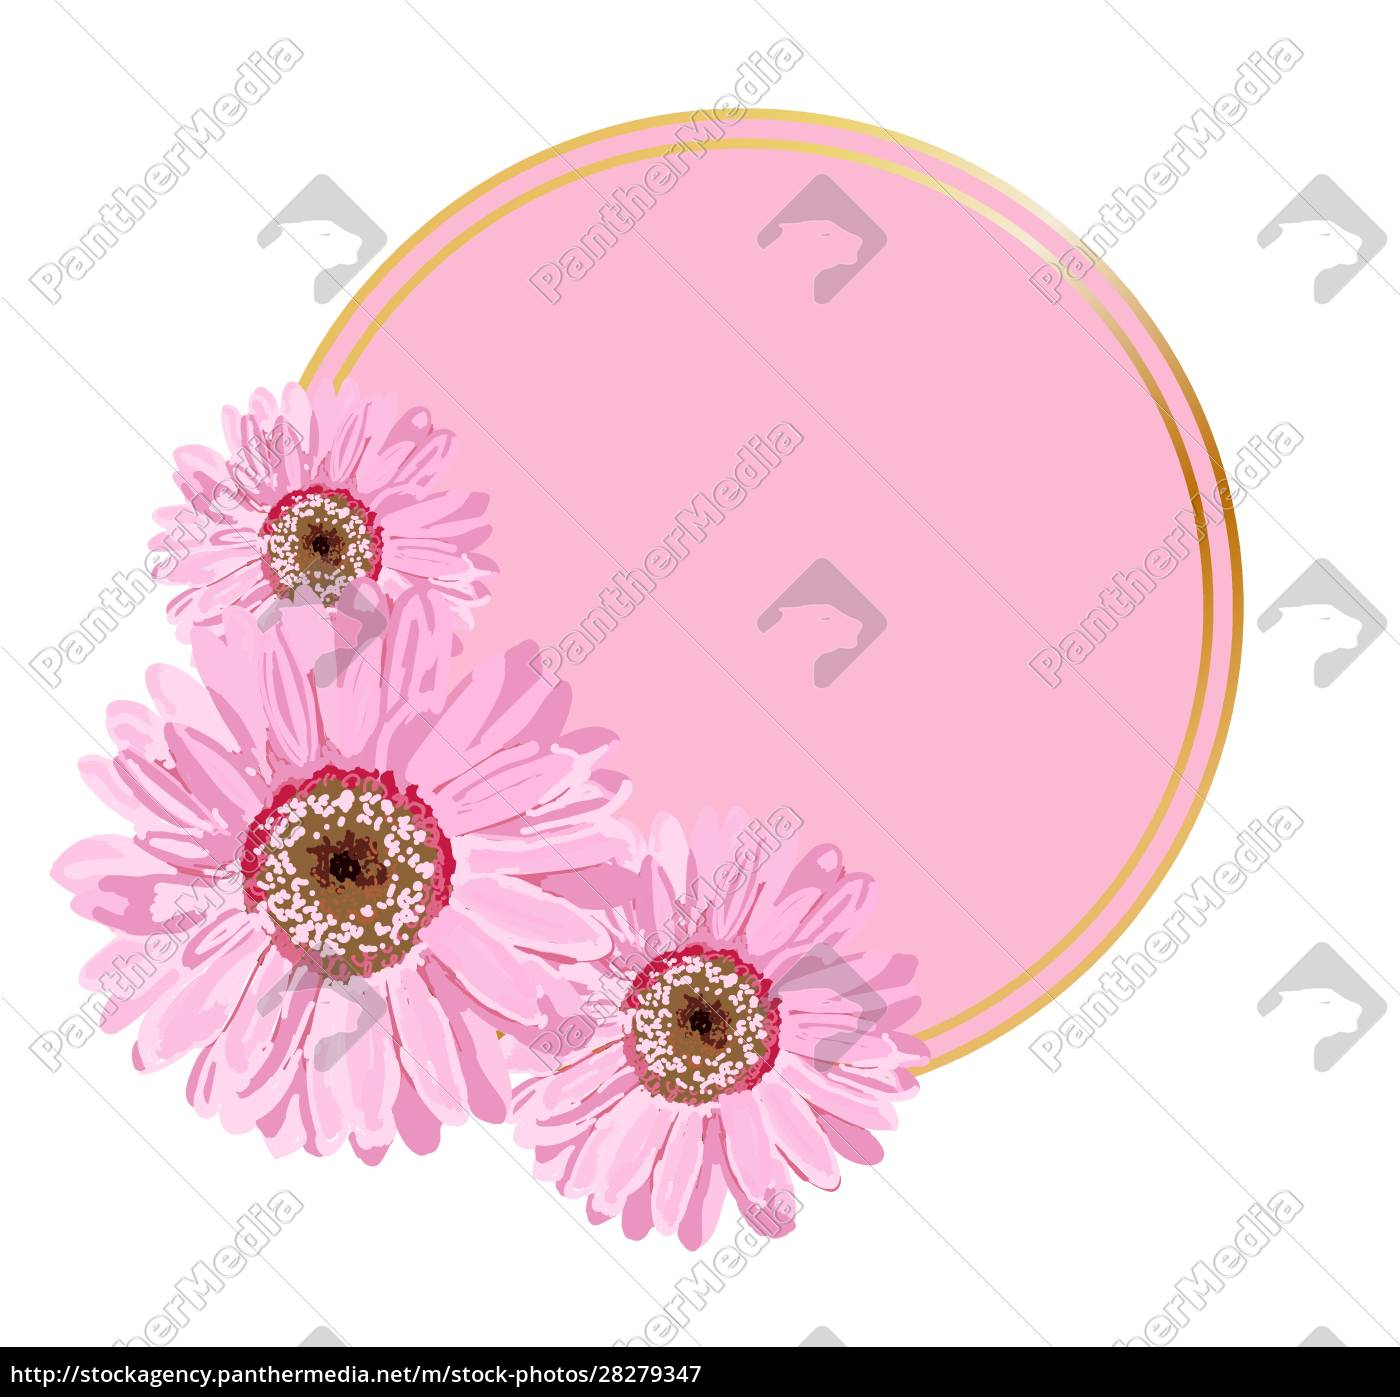 vector, round, background, for, lettering., pink - 28279347